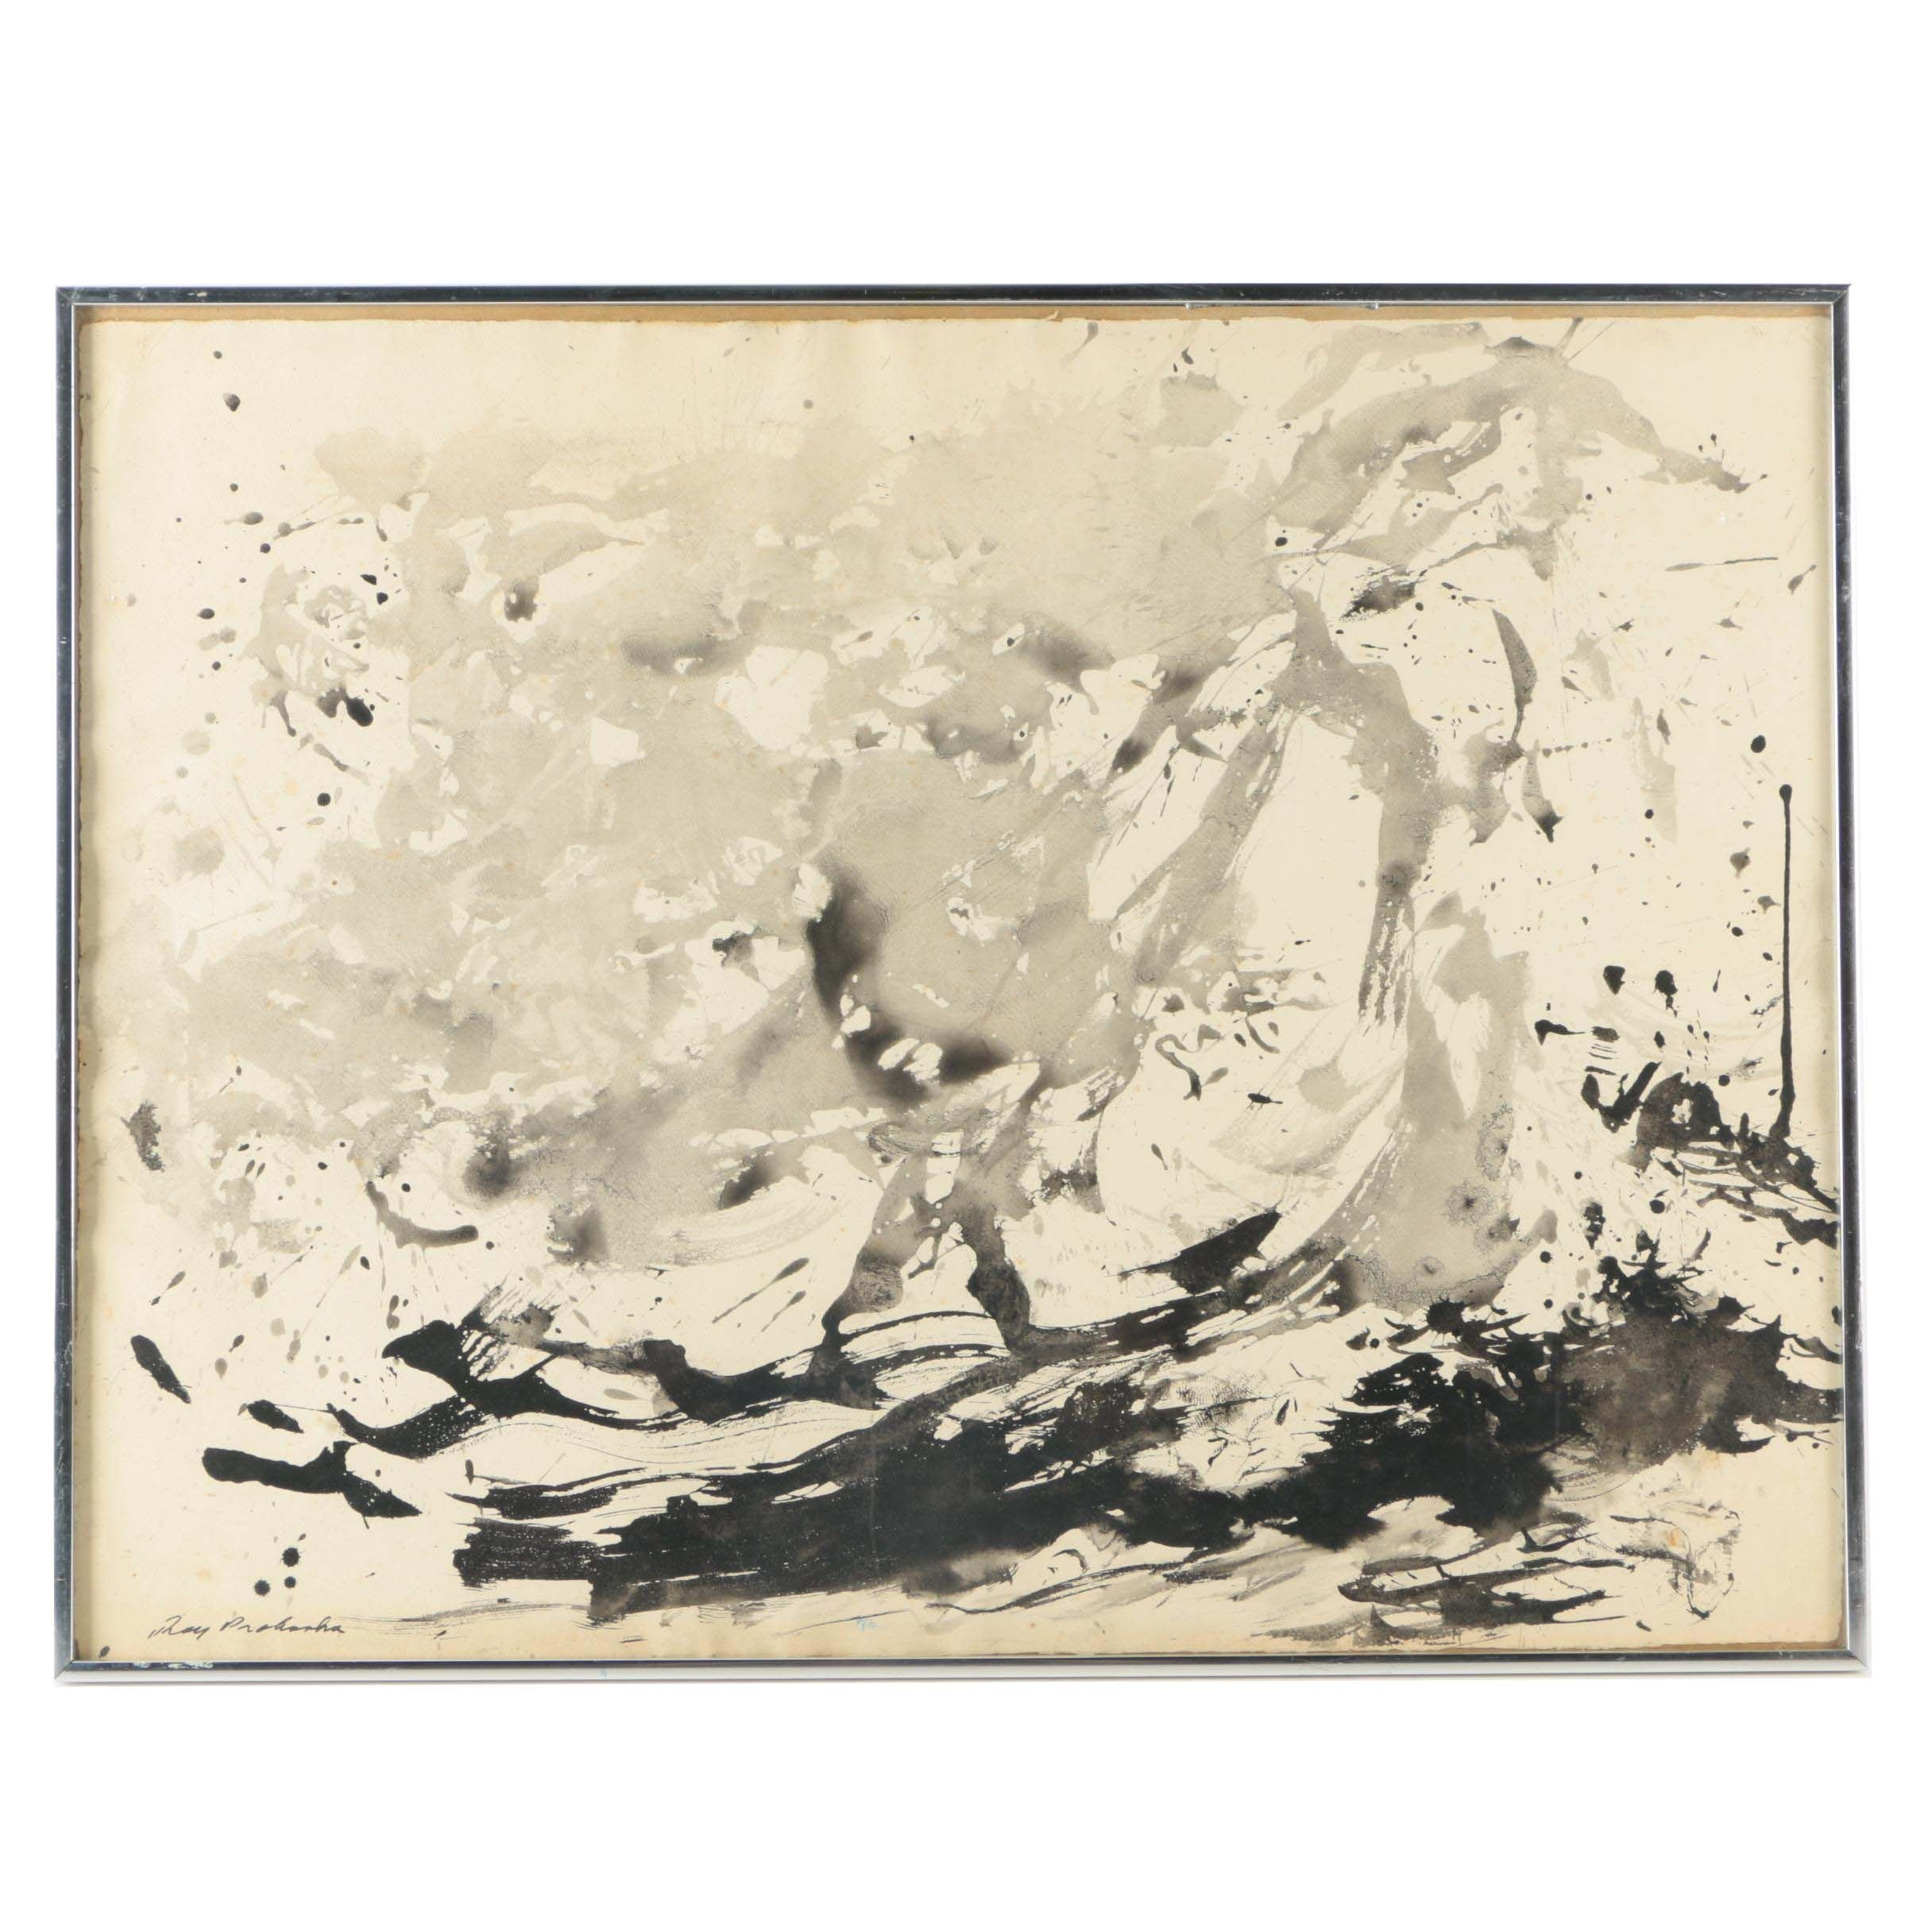 Ray Prohaska Ink Wash Painting on Paper of Abstract Composition